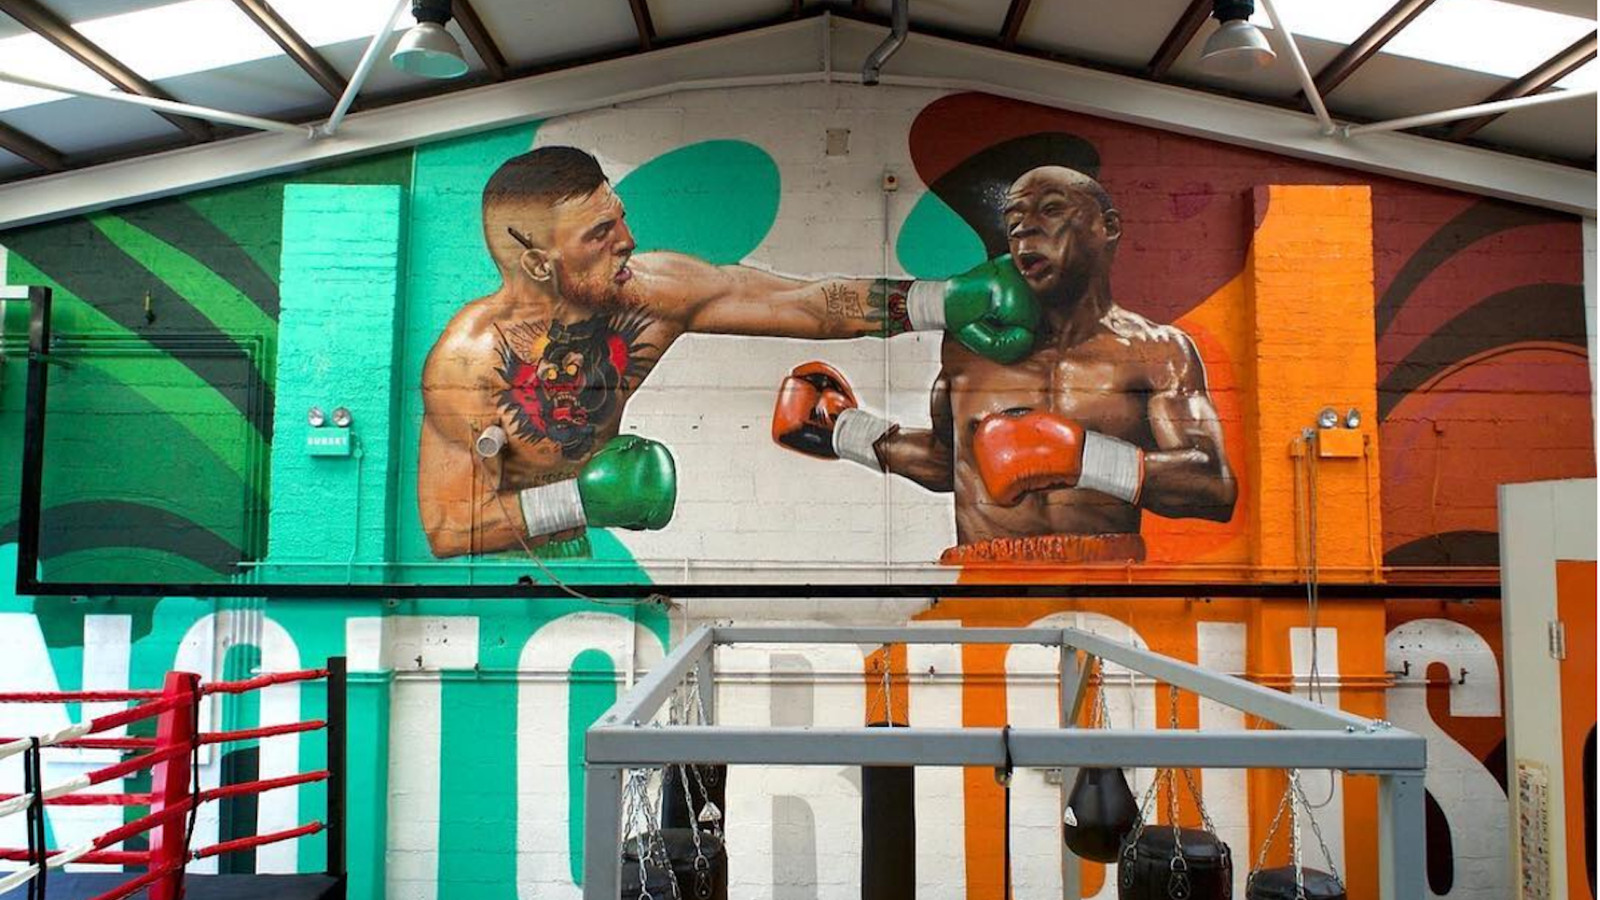 Mcgregor S Coach Puts Up Mayweather Ko Mural In Gym To